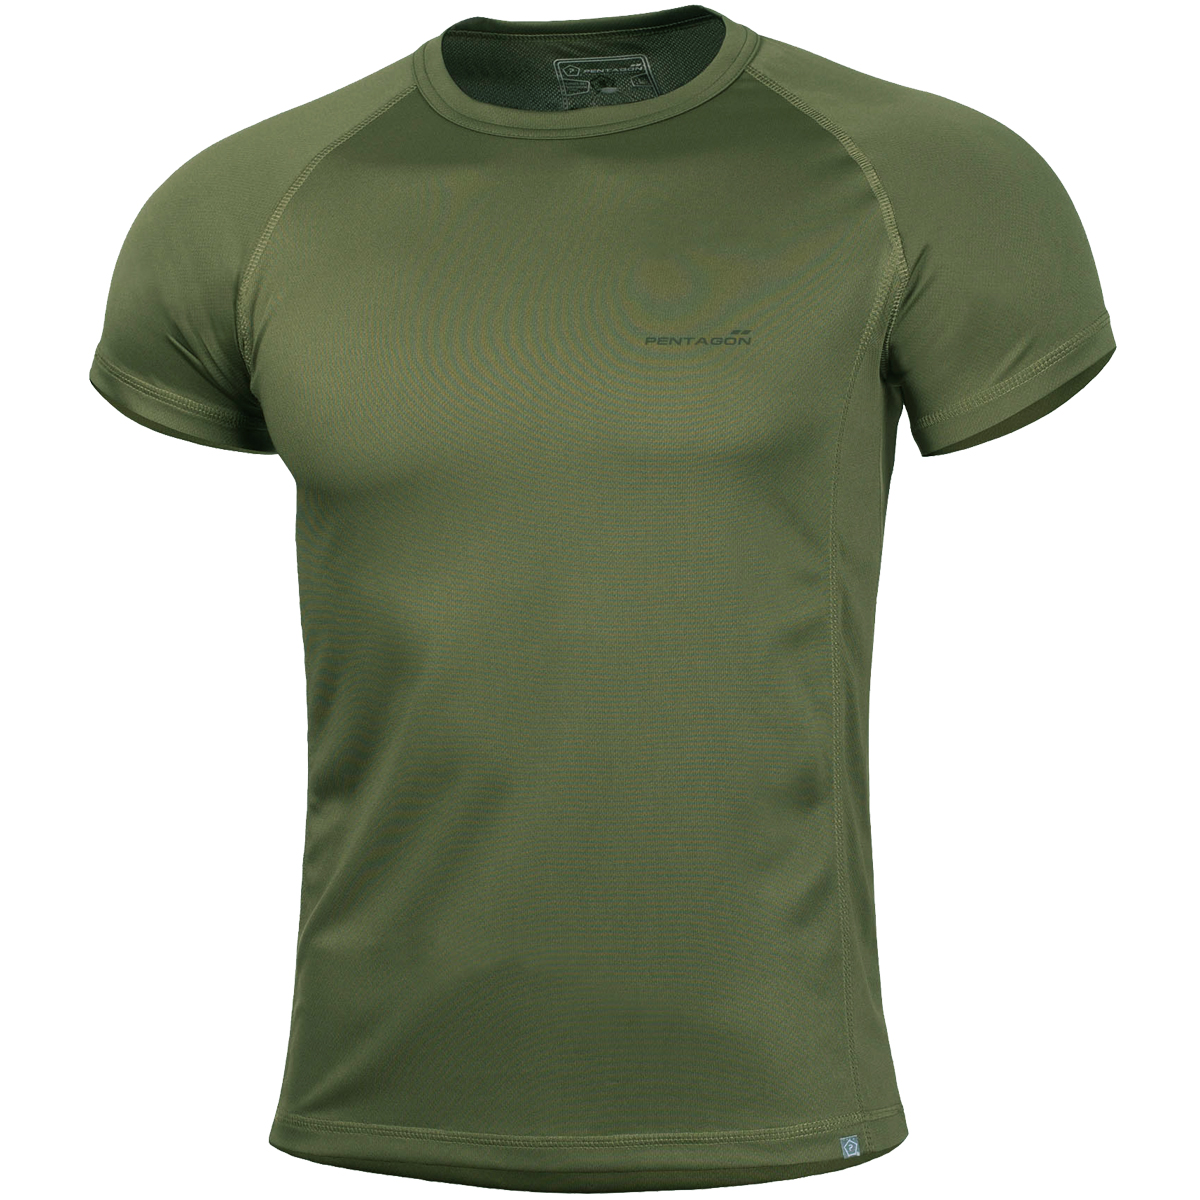 Pentagon body shock t shirt olive green t shirts vests for I will t shirt